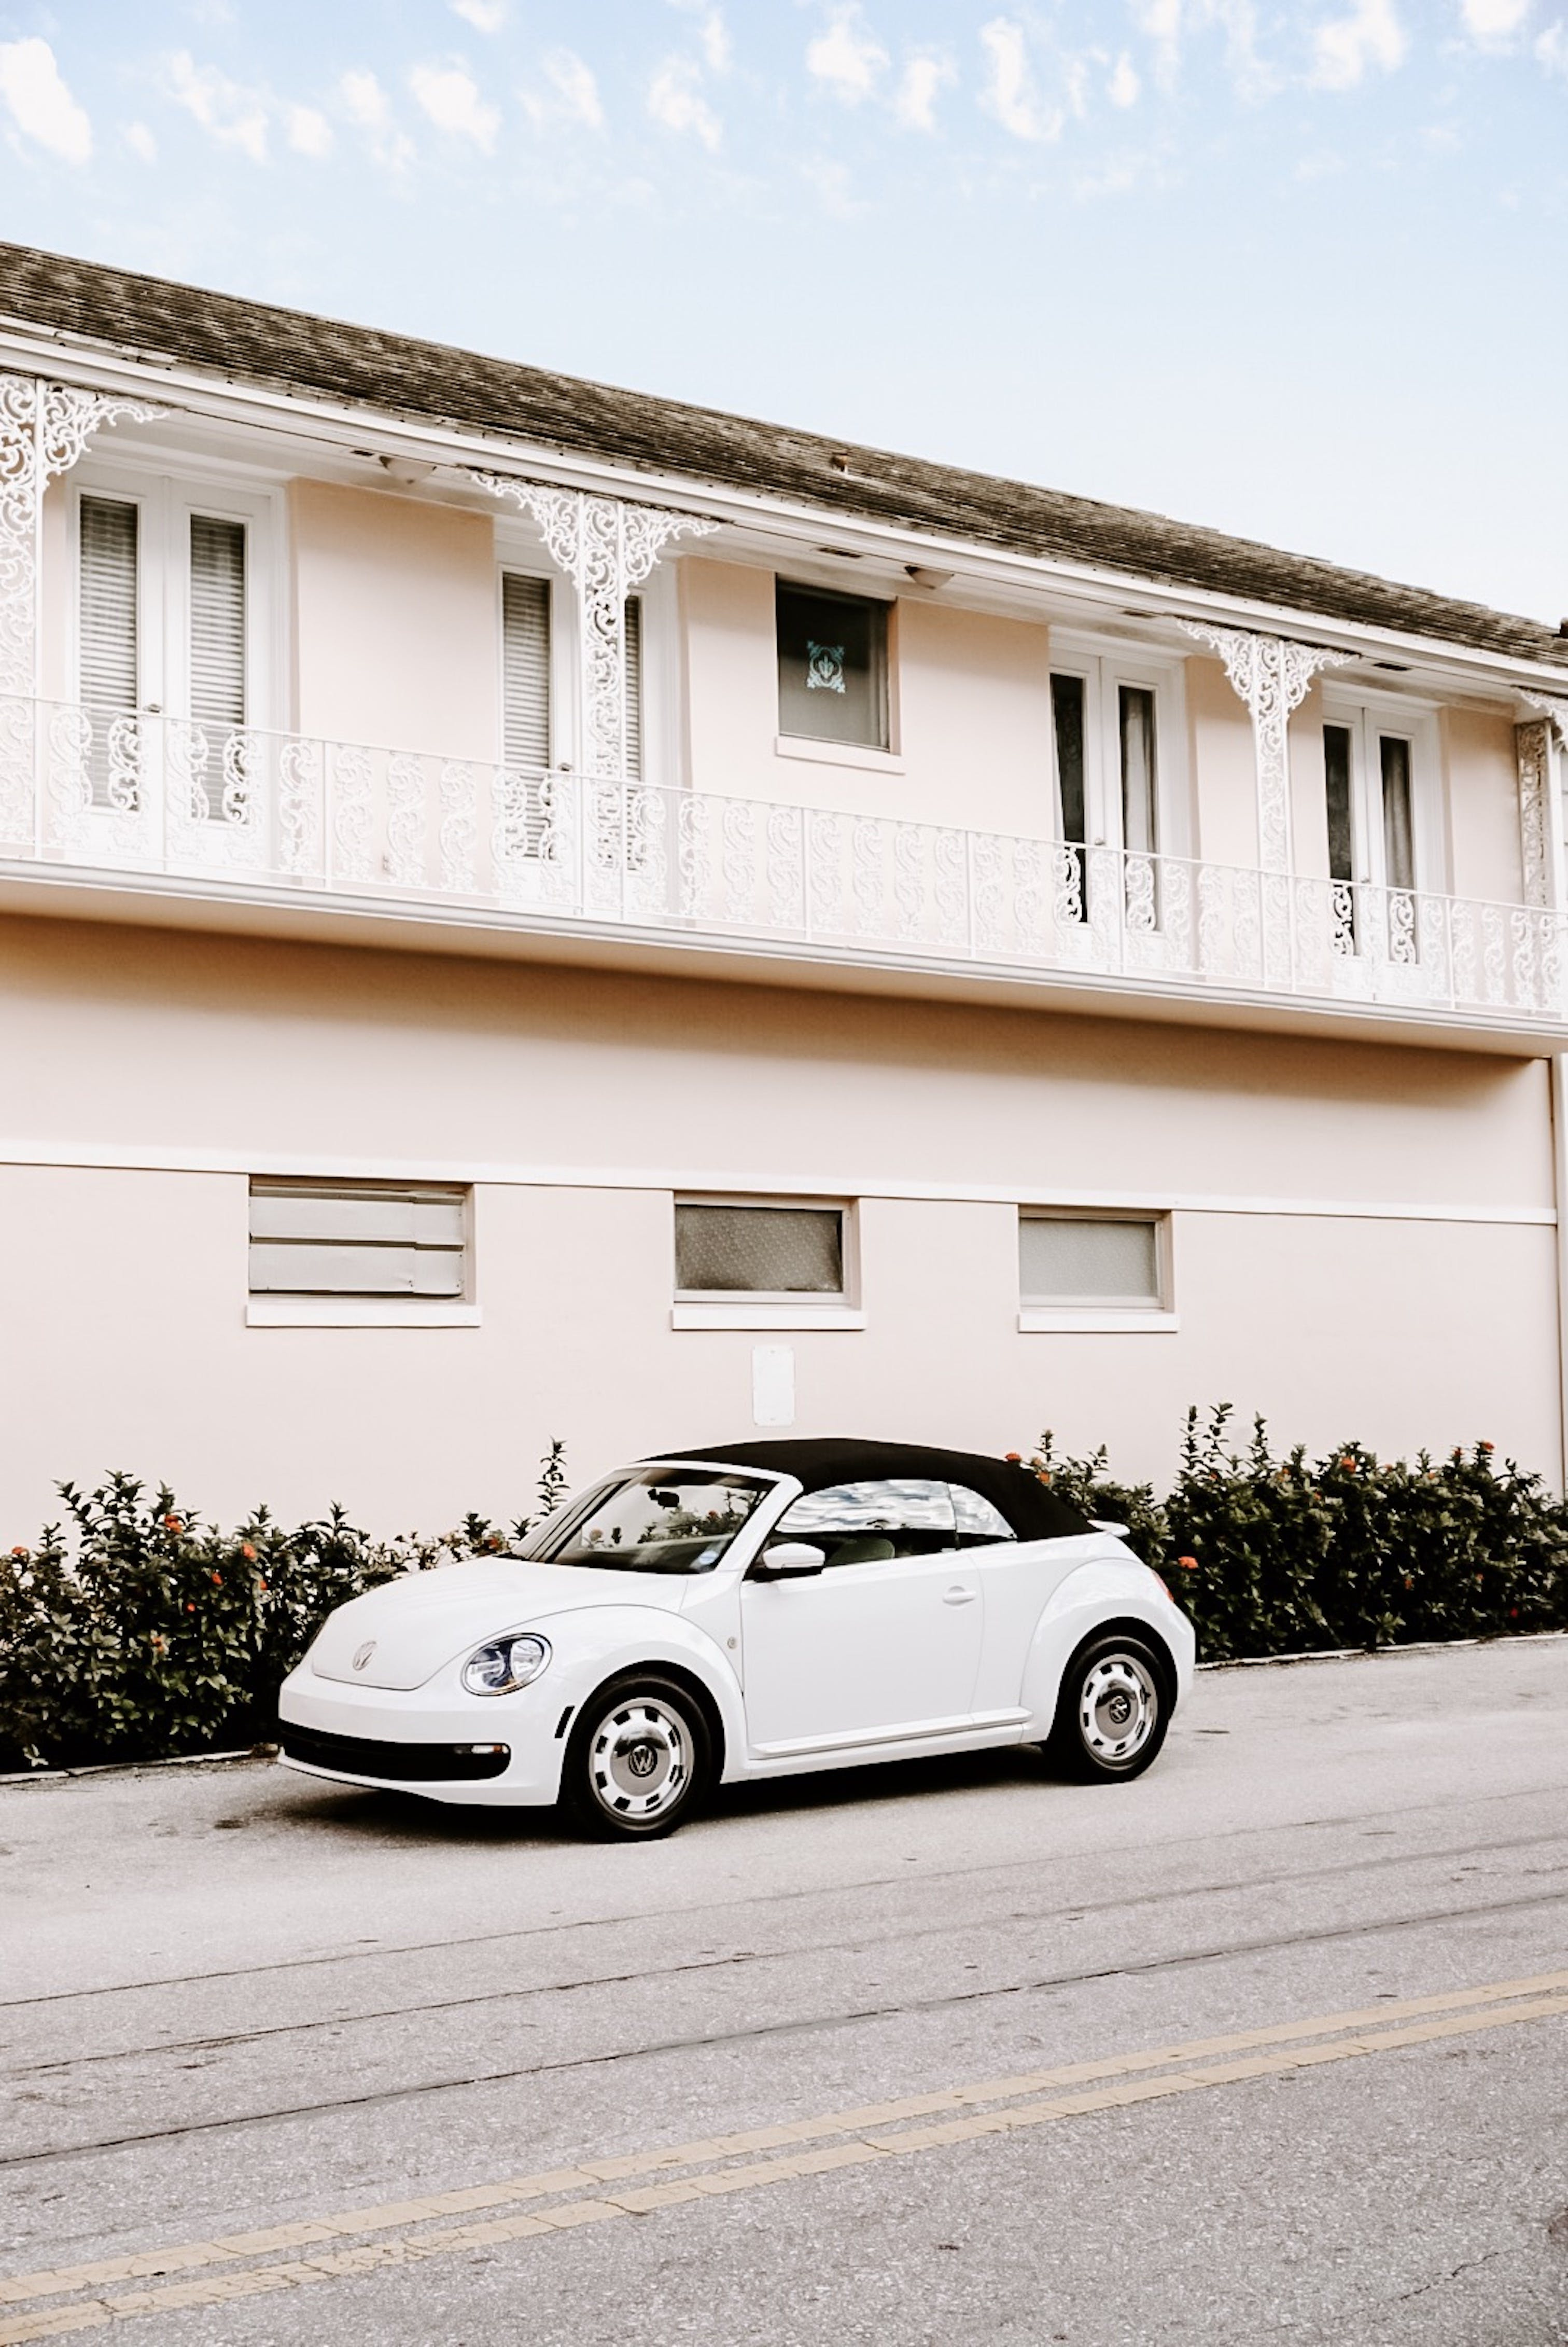 White Convertible Coupe Parked Beside House